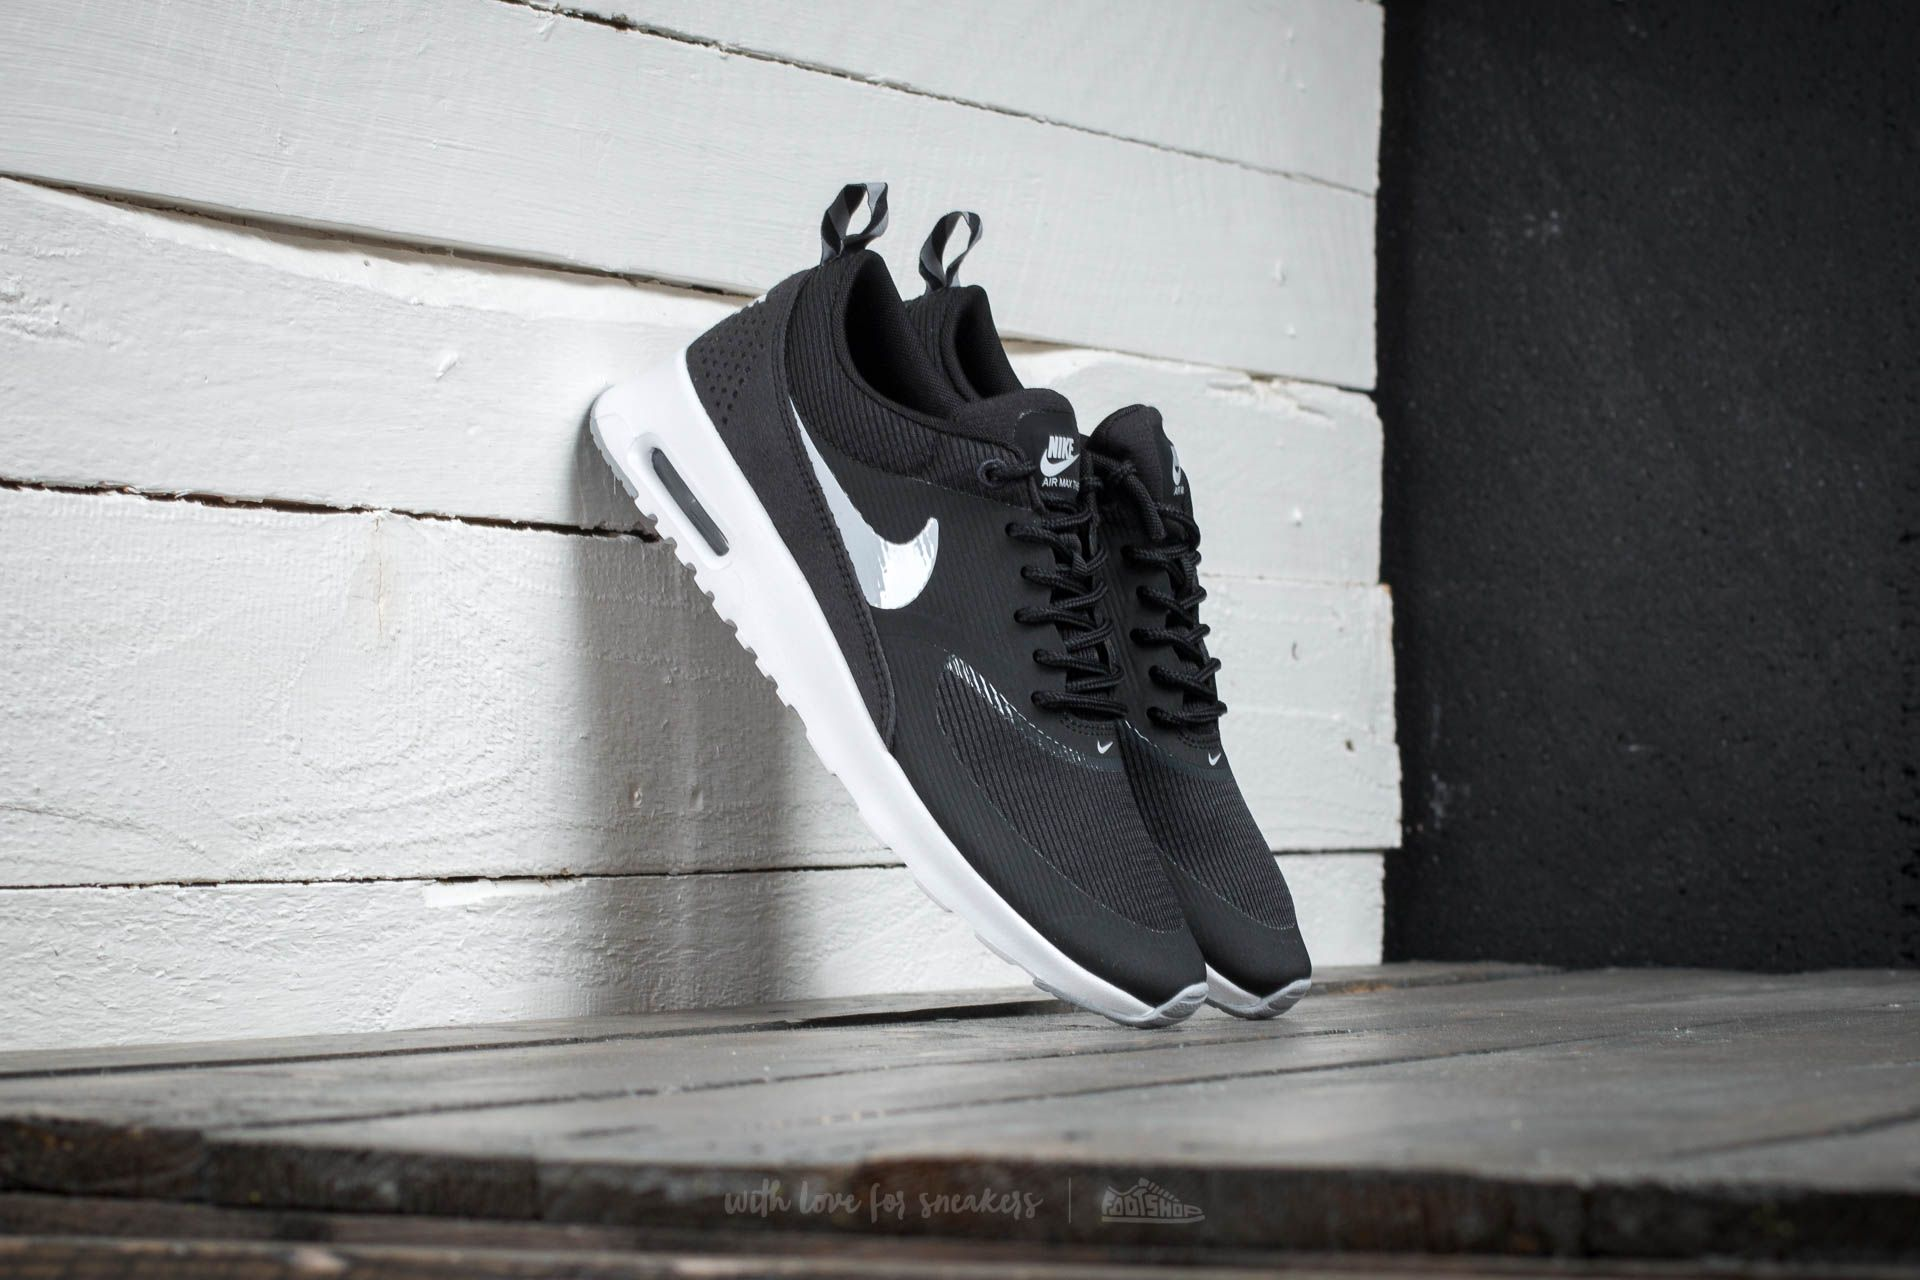 hot sale online 7e5c7 4ebdc Wmns Nike Air Max Thea. Black  Wolf Grey Anthracite White